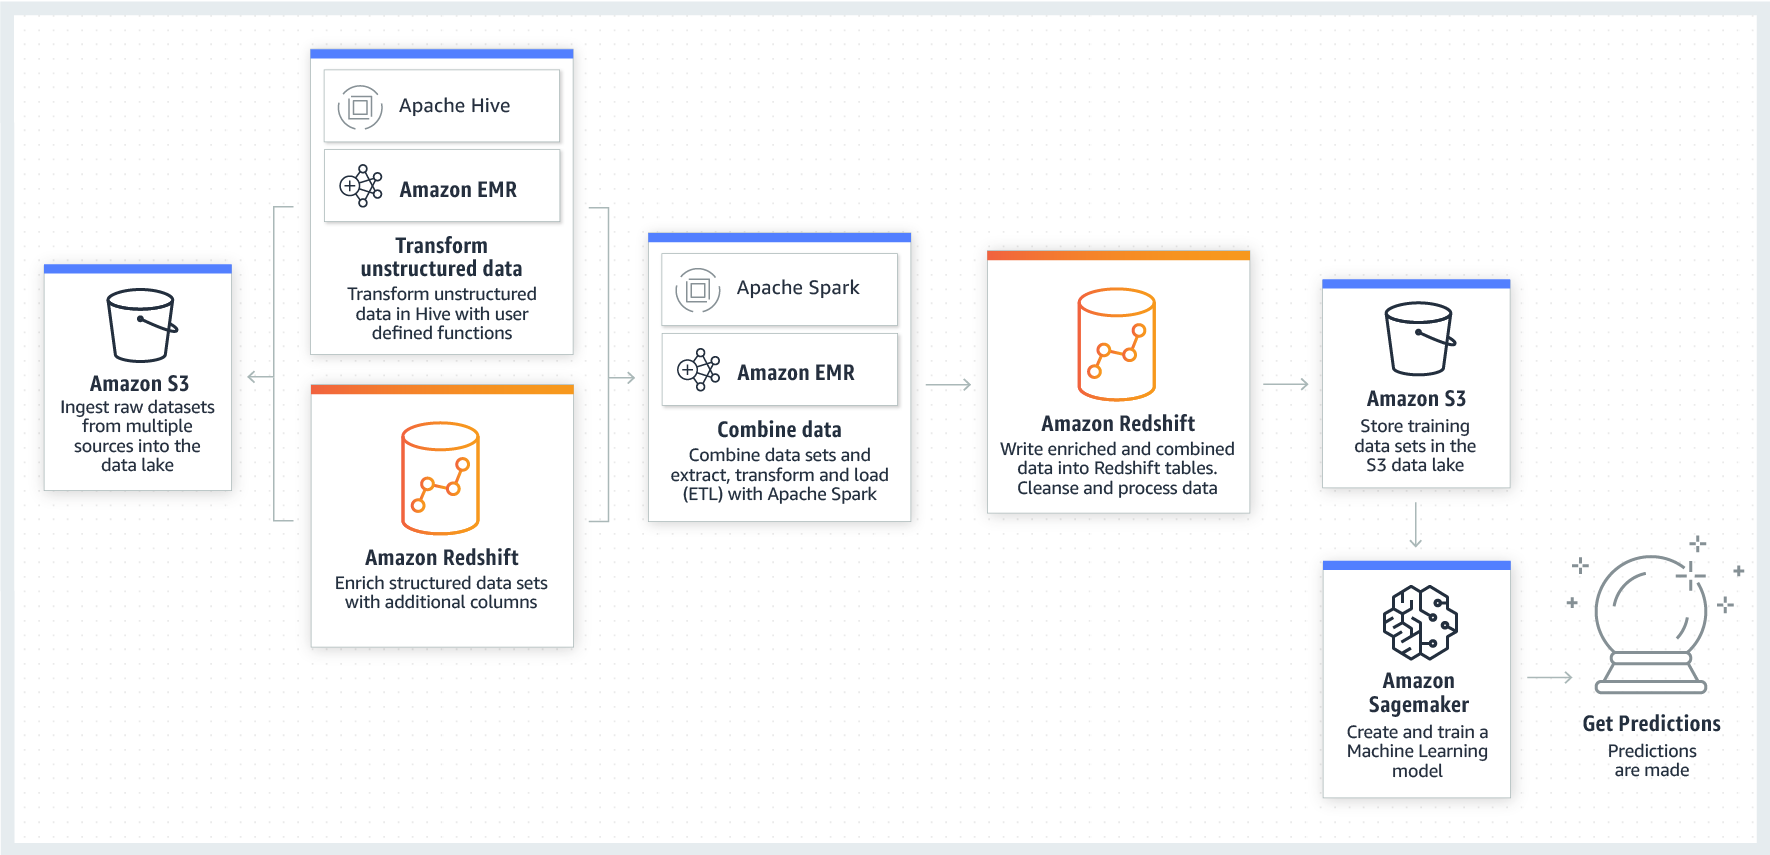 product-page-diagram-AWS-Redshift-Launch_Integrate-Other-Analytics-Data-Science-Machine-Learning@1.5x